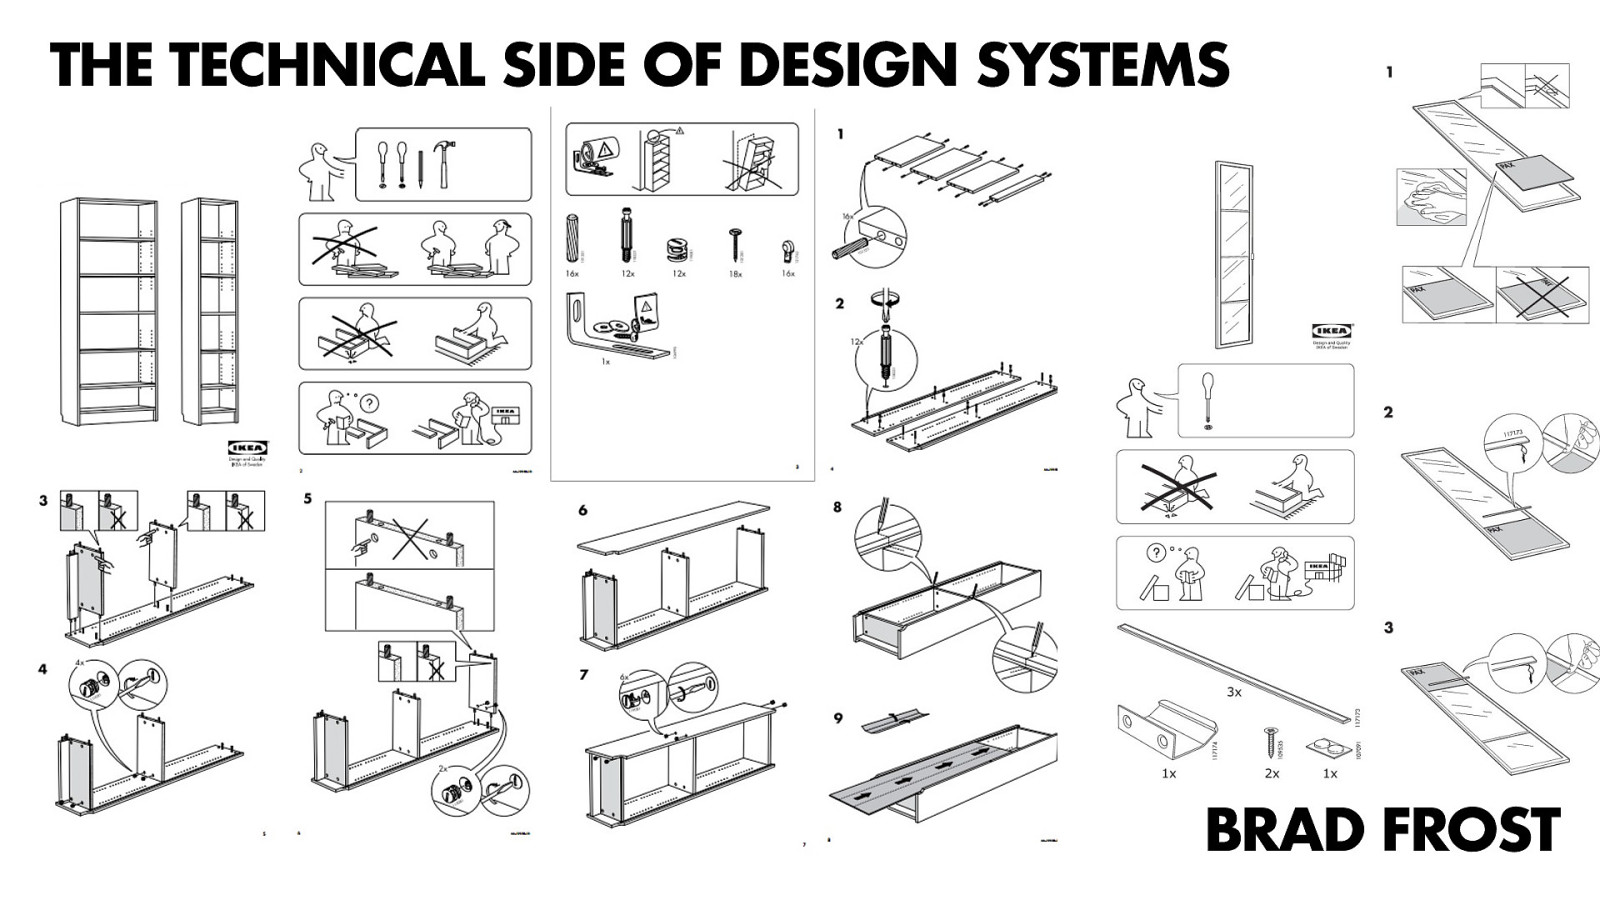 The Technical Side of Design Systems